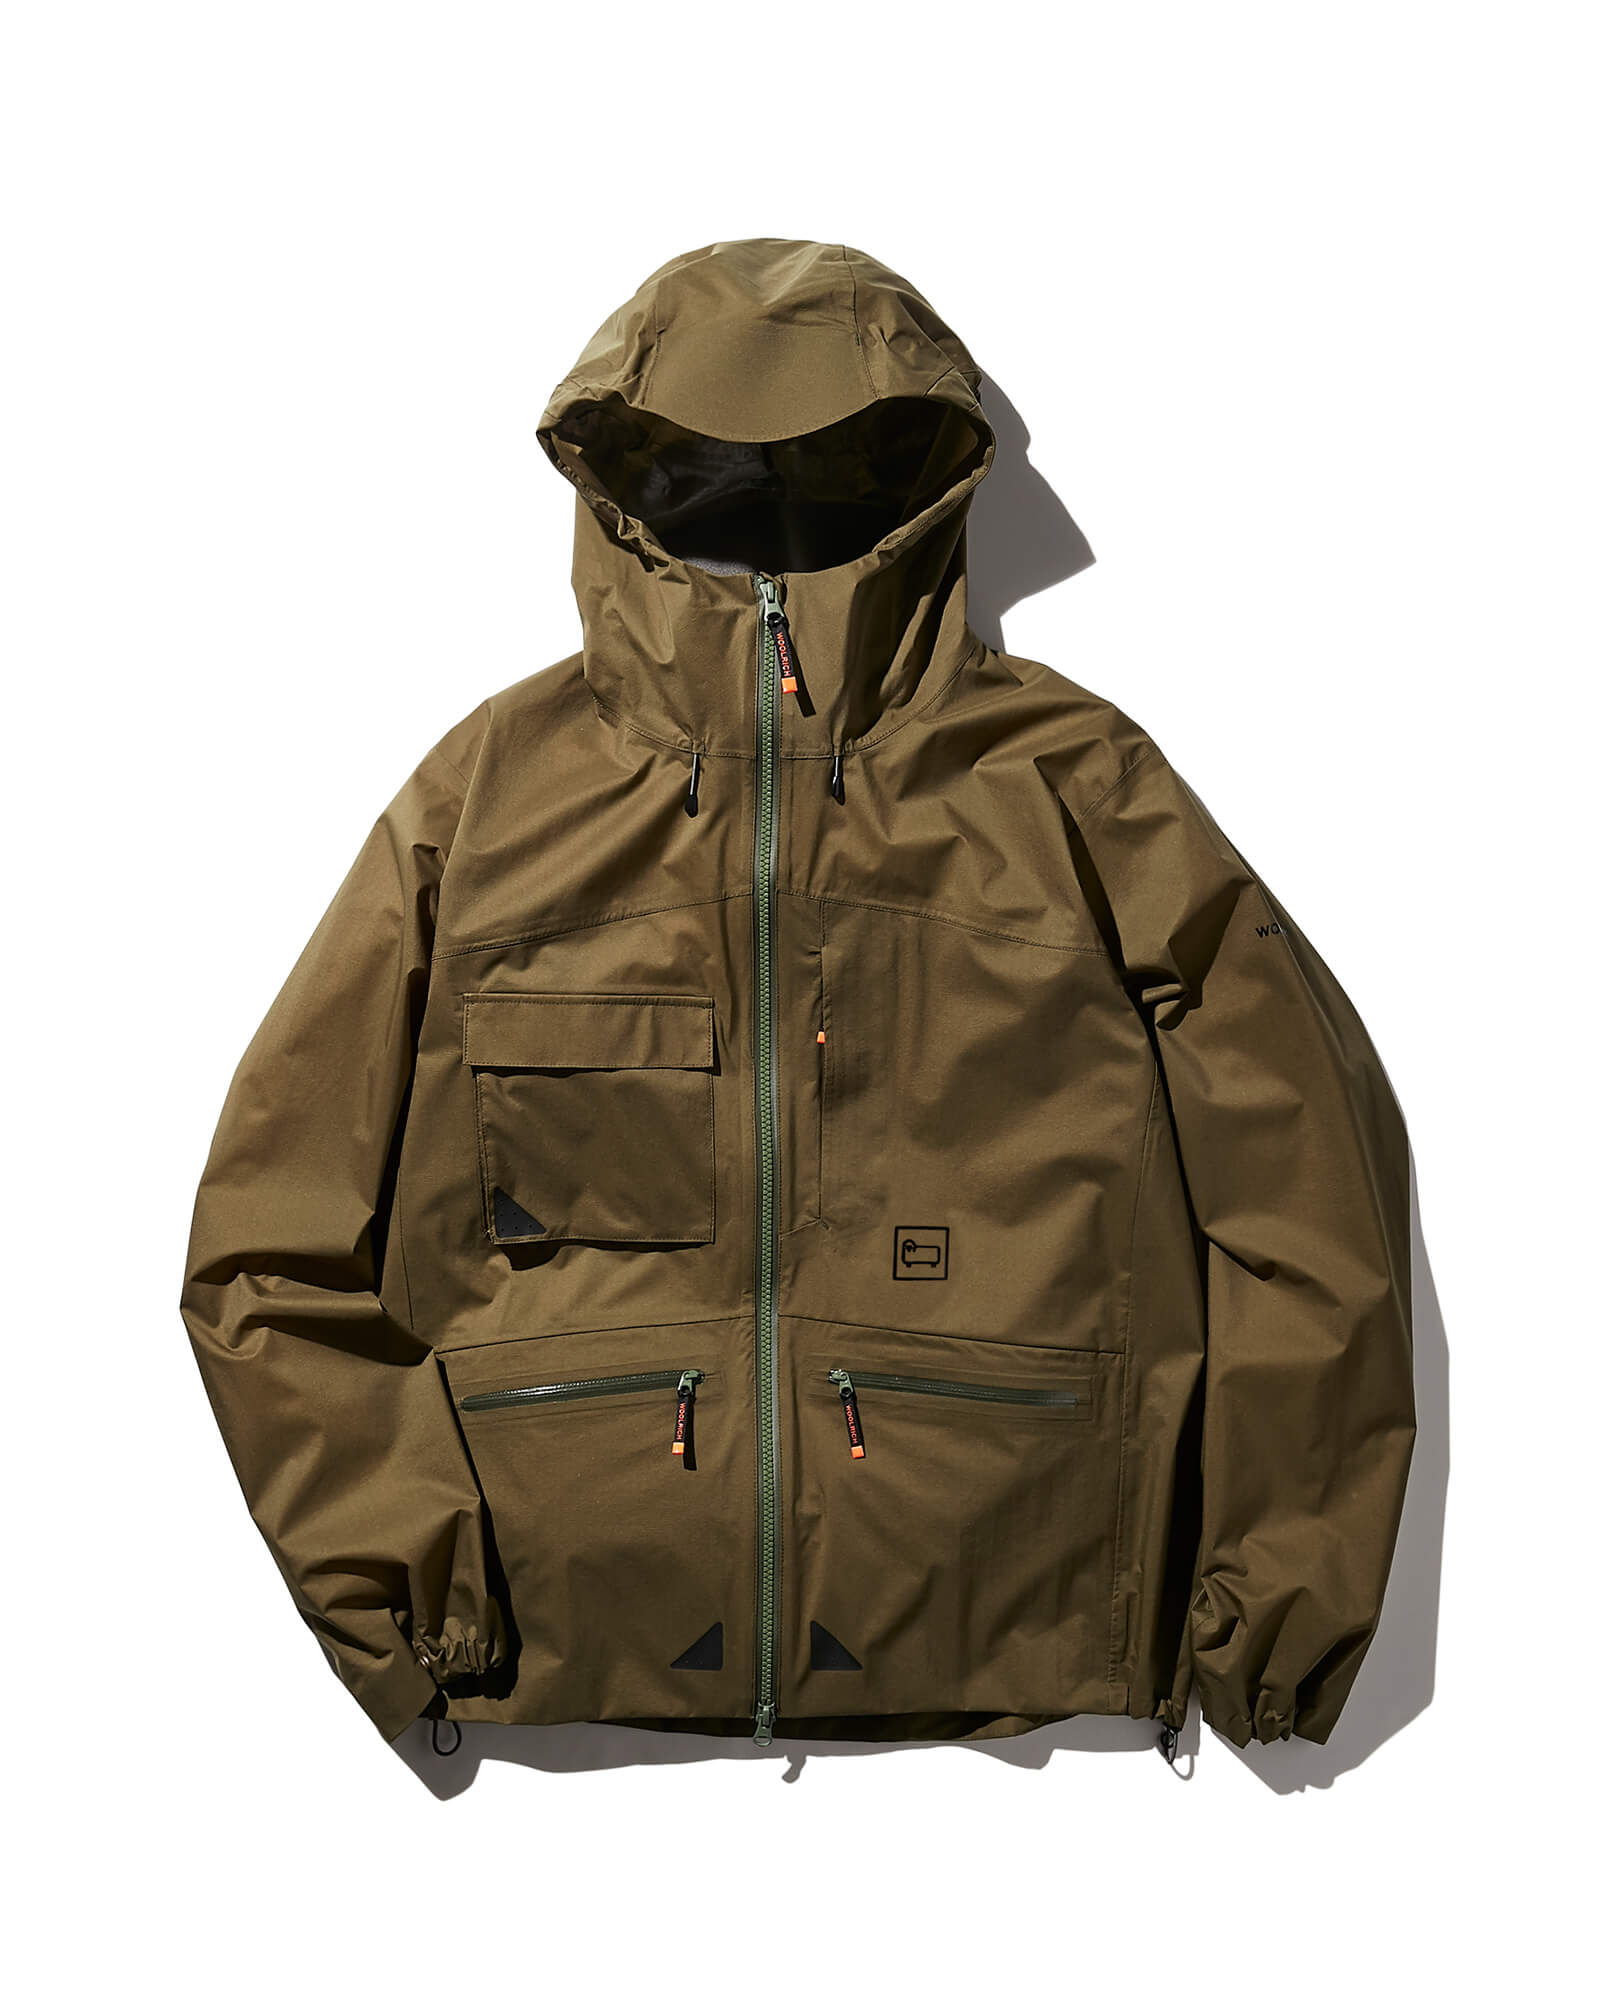 RICH'S  MOUNTAIN JACKET